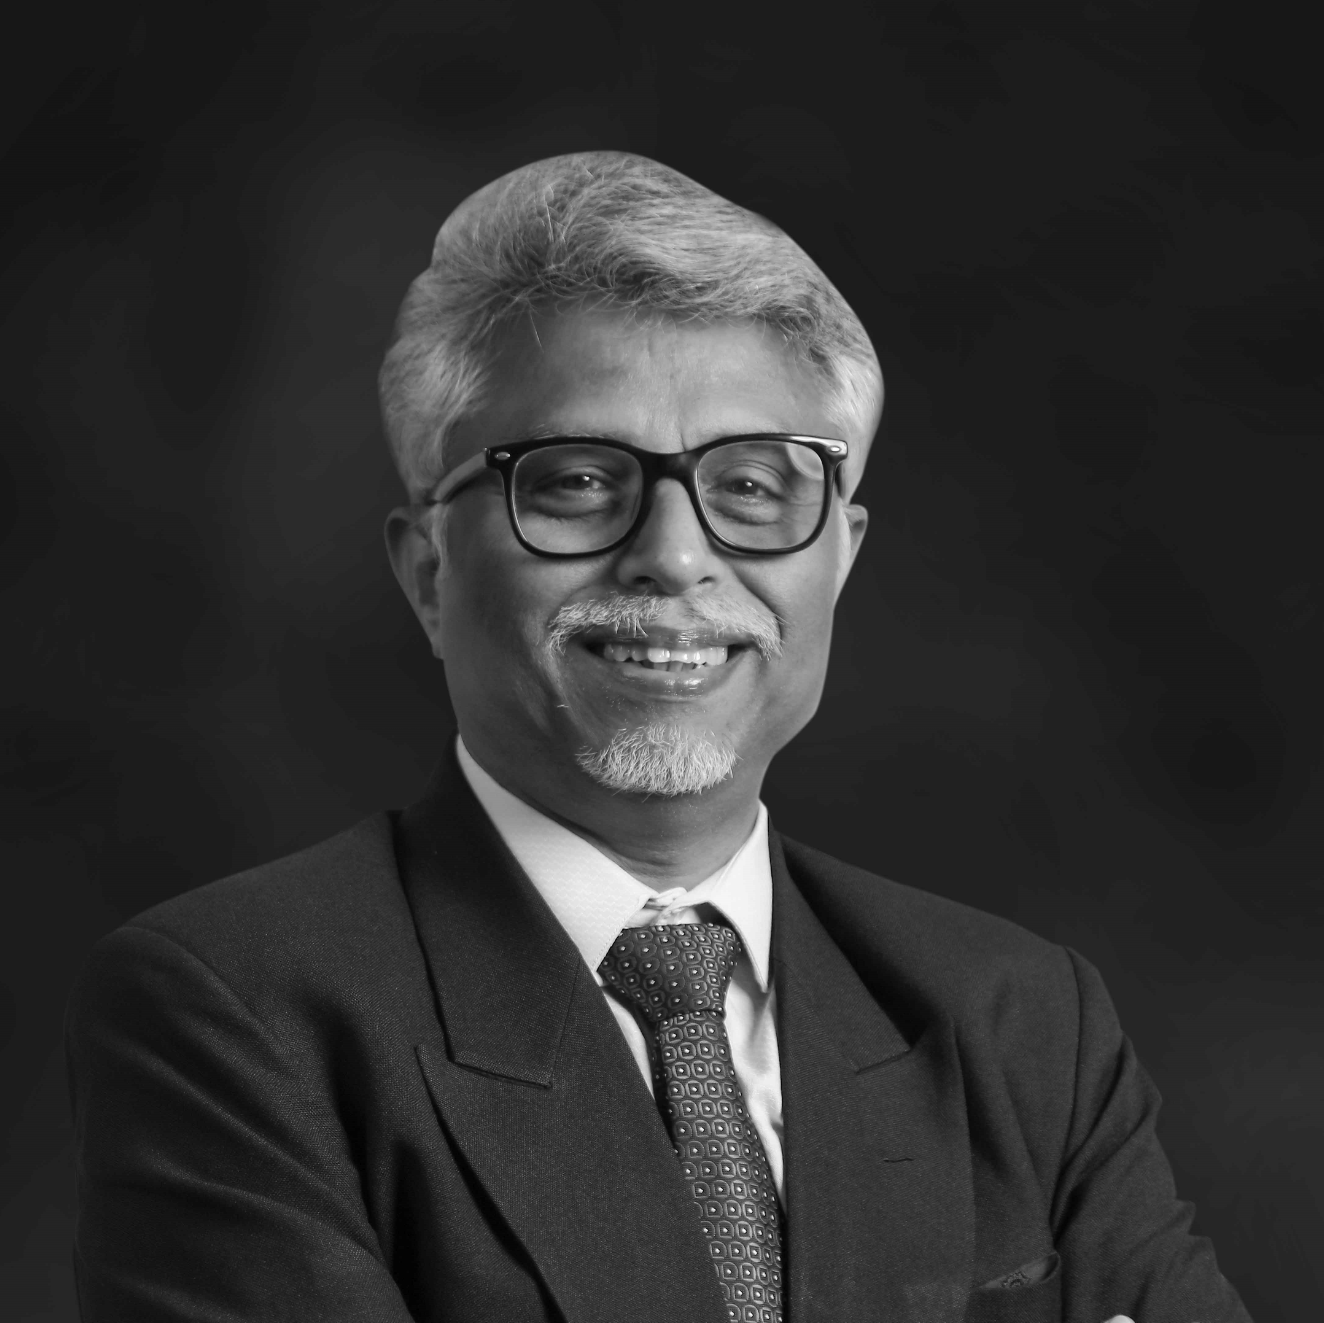 Prof. Sridar is the Dean of Chennai Business School (Chennai colleges for mba)